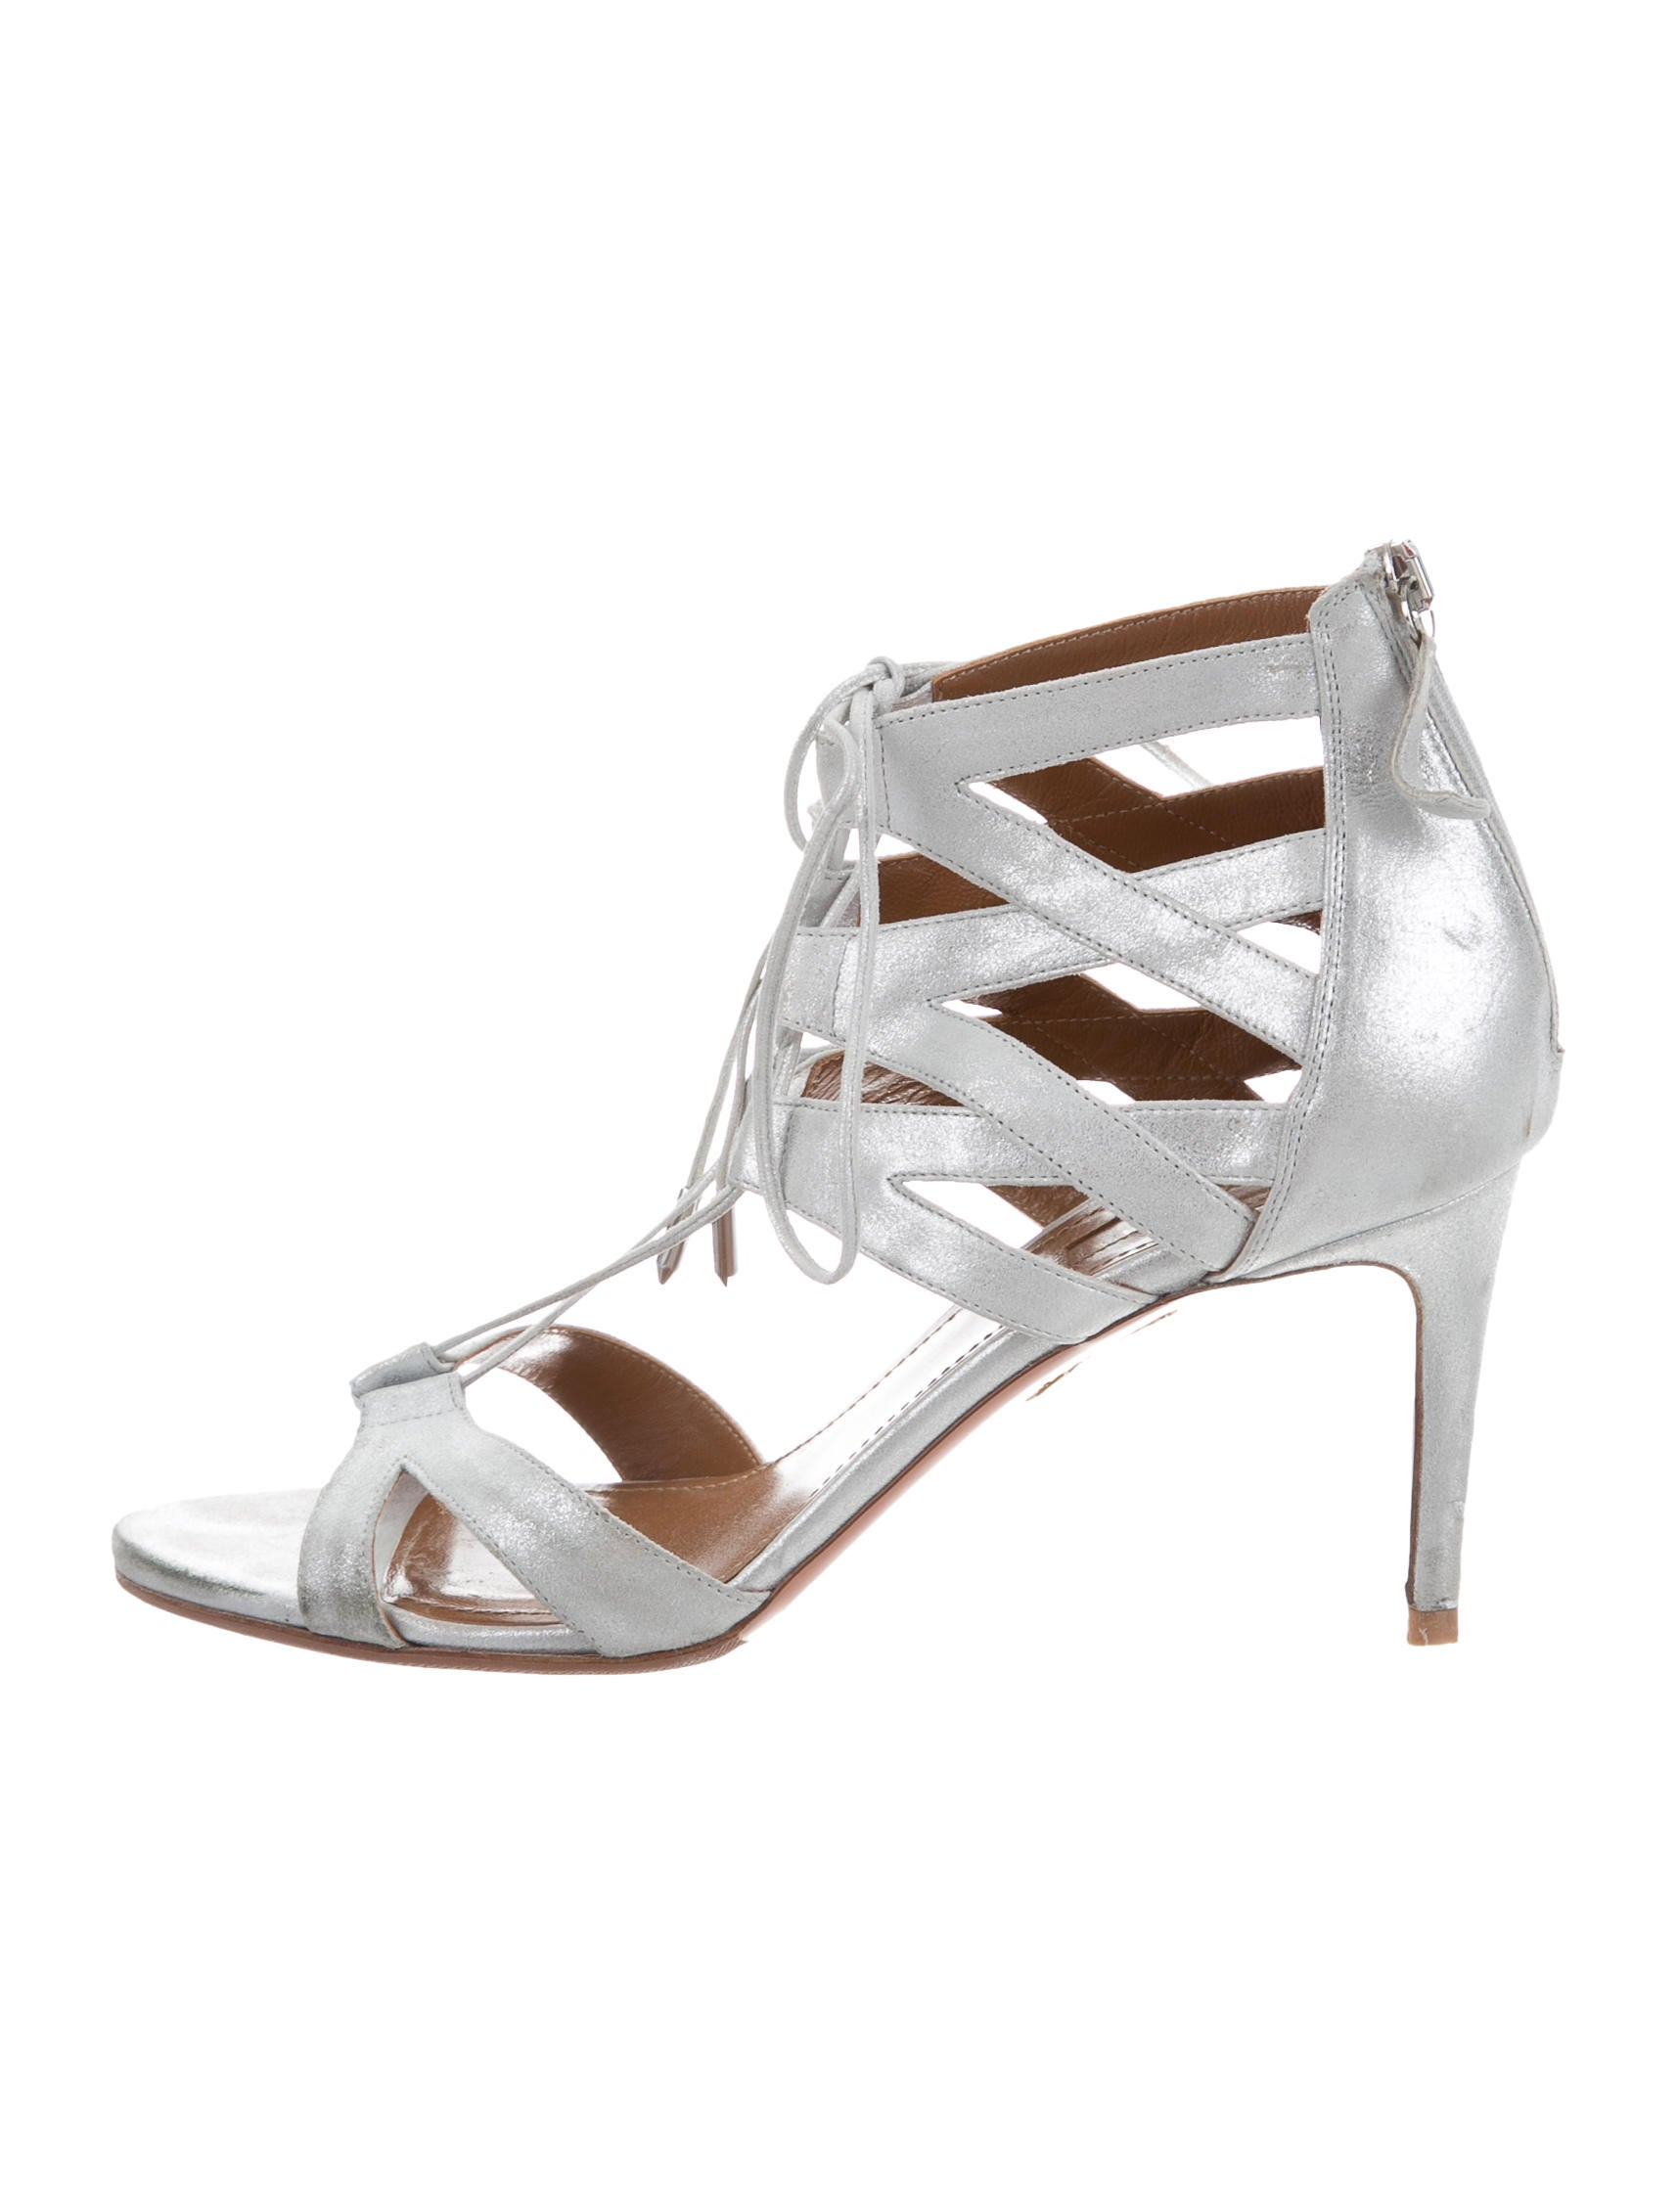 abcc8d24747e Aquazzura Beverly Hills 75 Cage Sandals - Shoes - AQZ25057